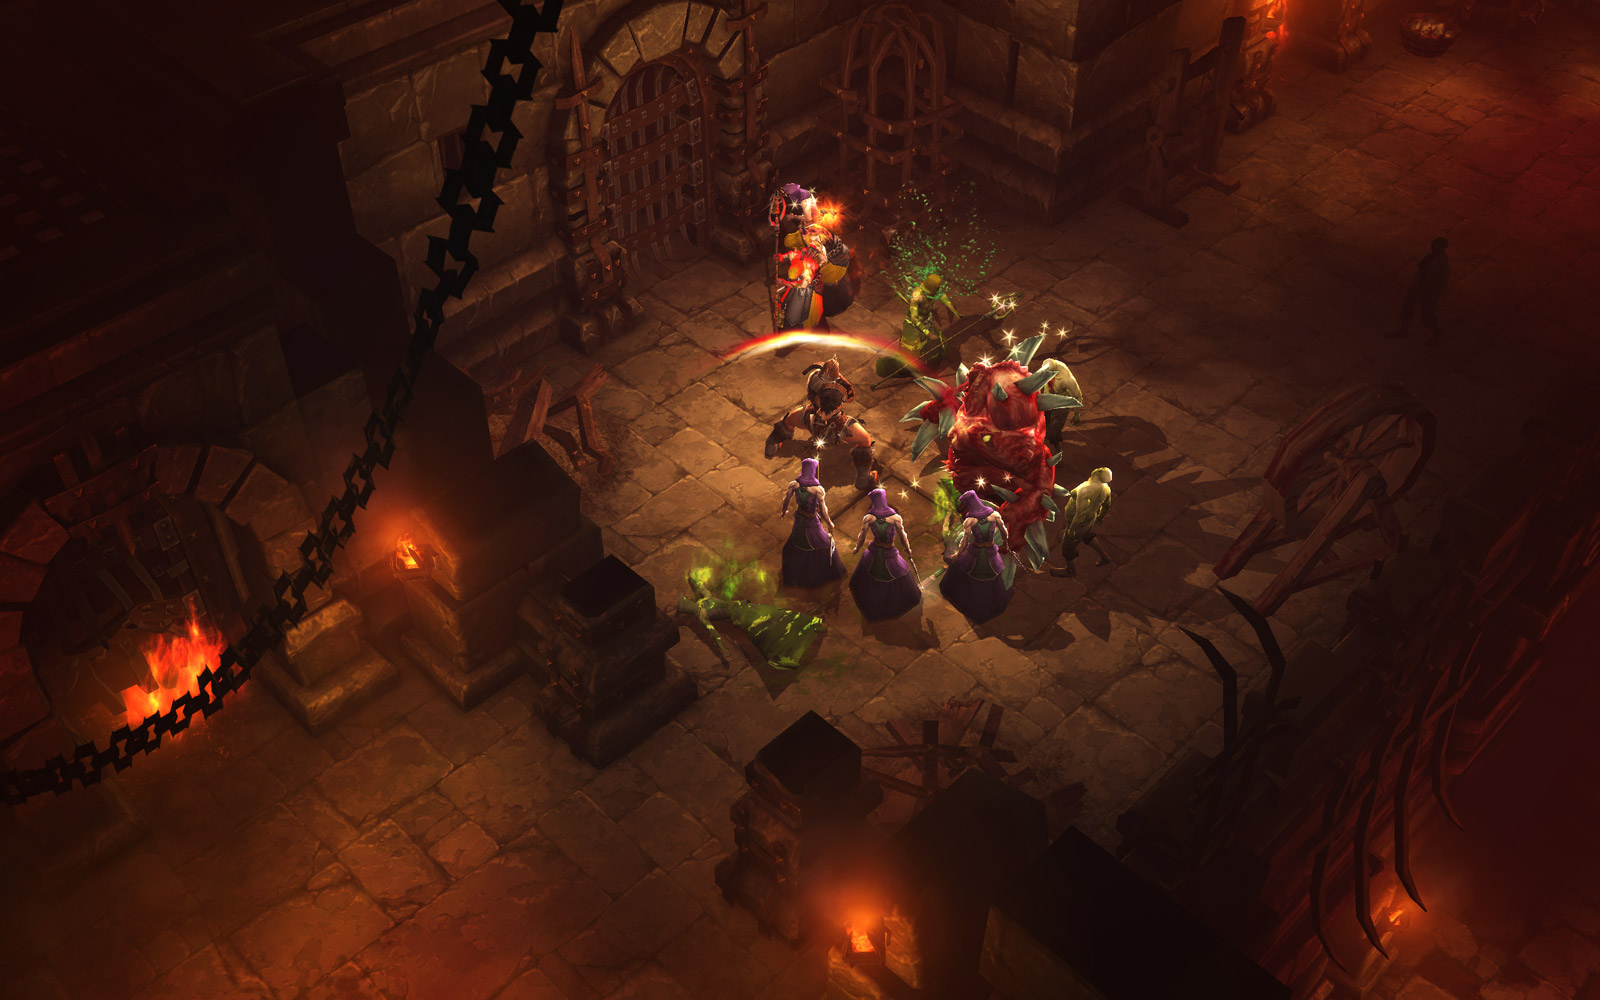 Diablo 3 release date is in early 2012, more beta keys going